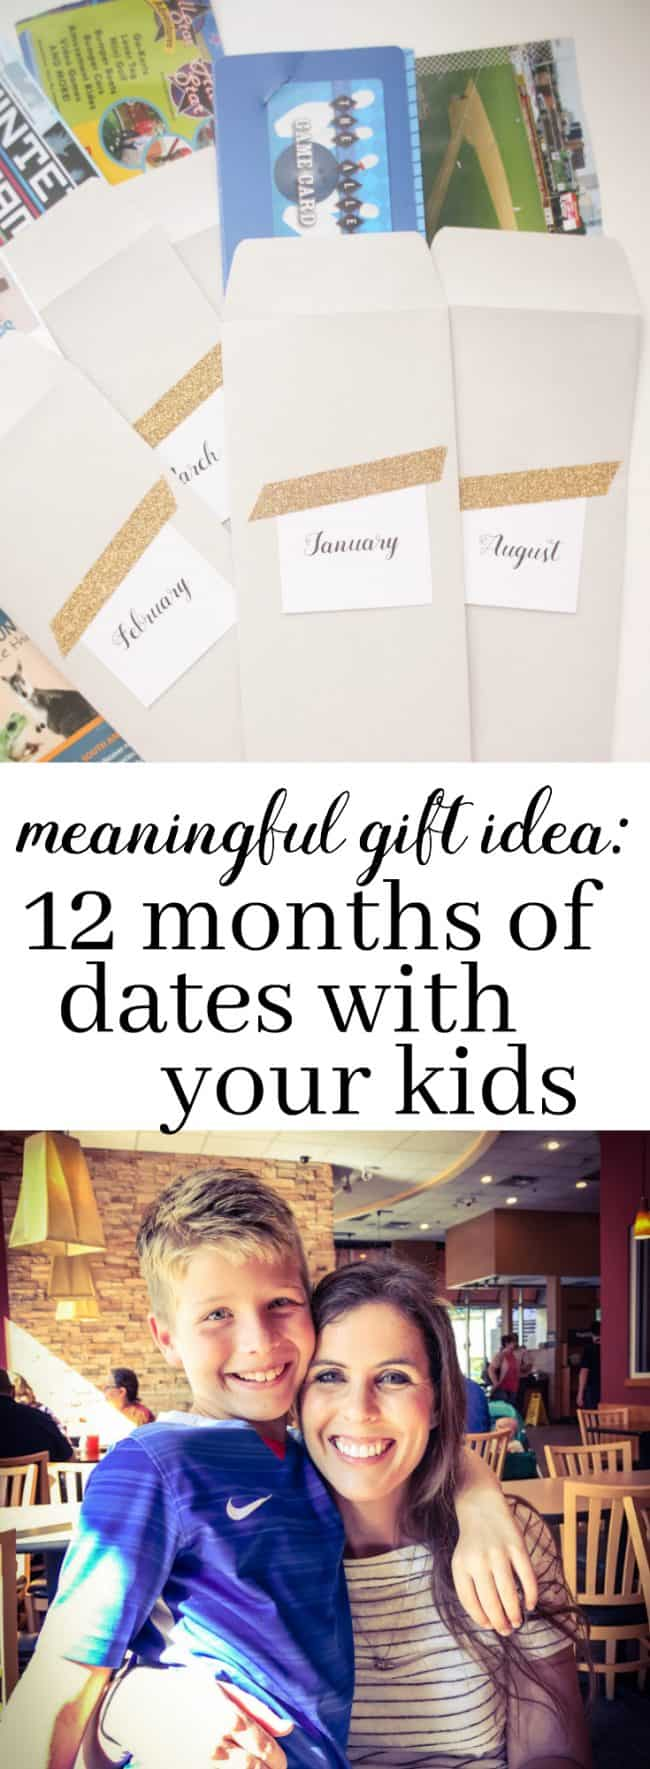 Meaningful Gift Idea_ 12 Months of Dates with Your Kids